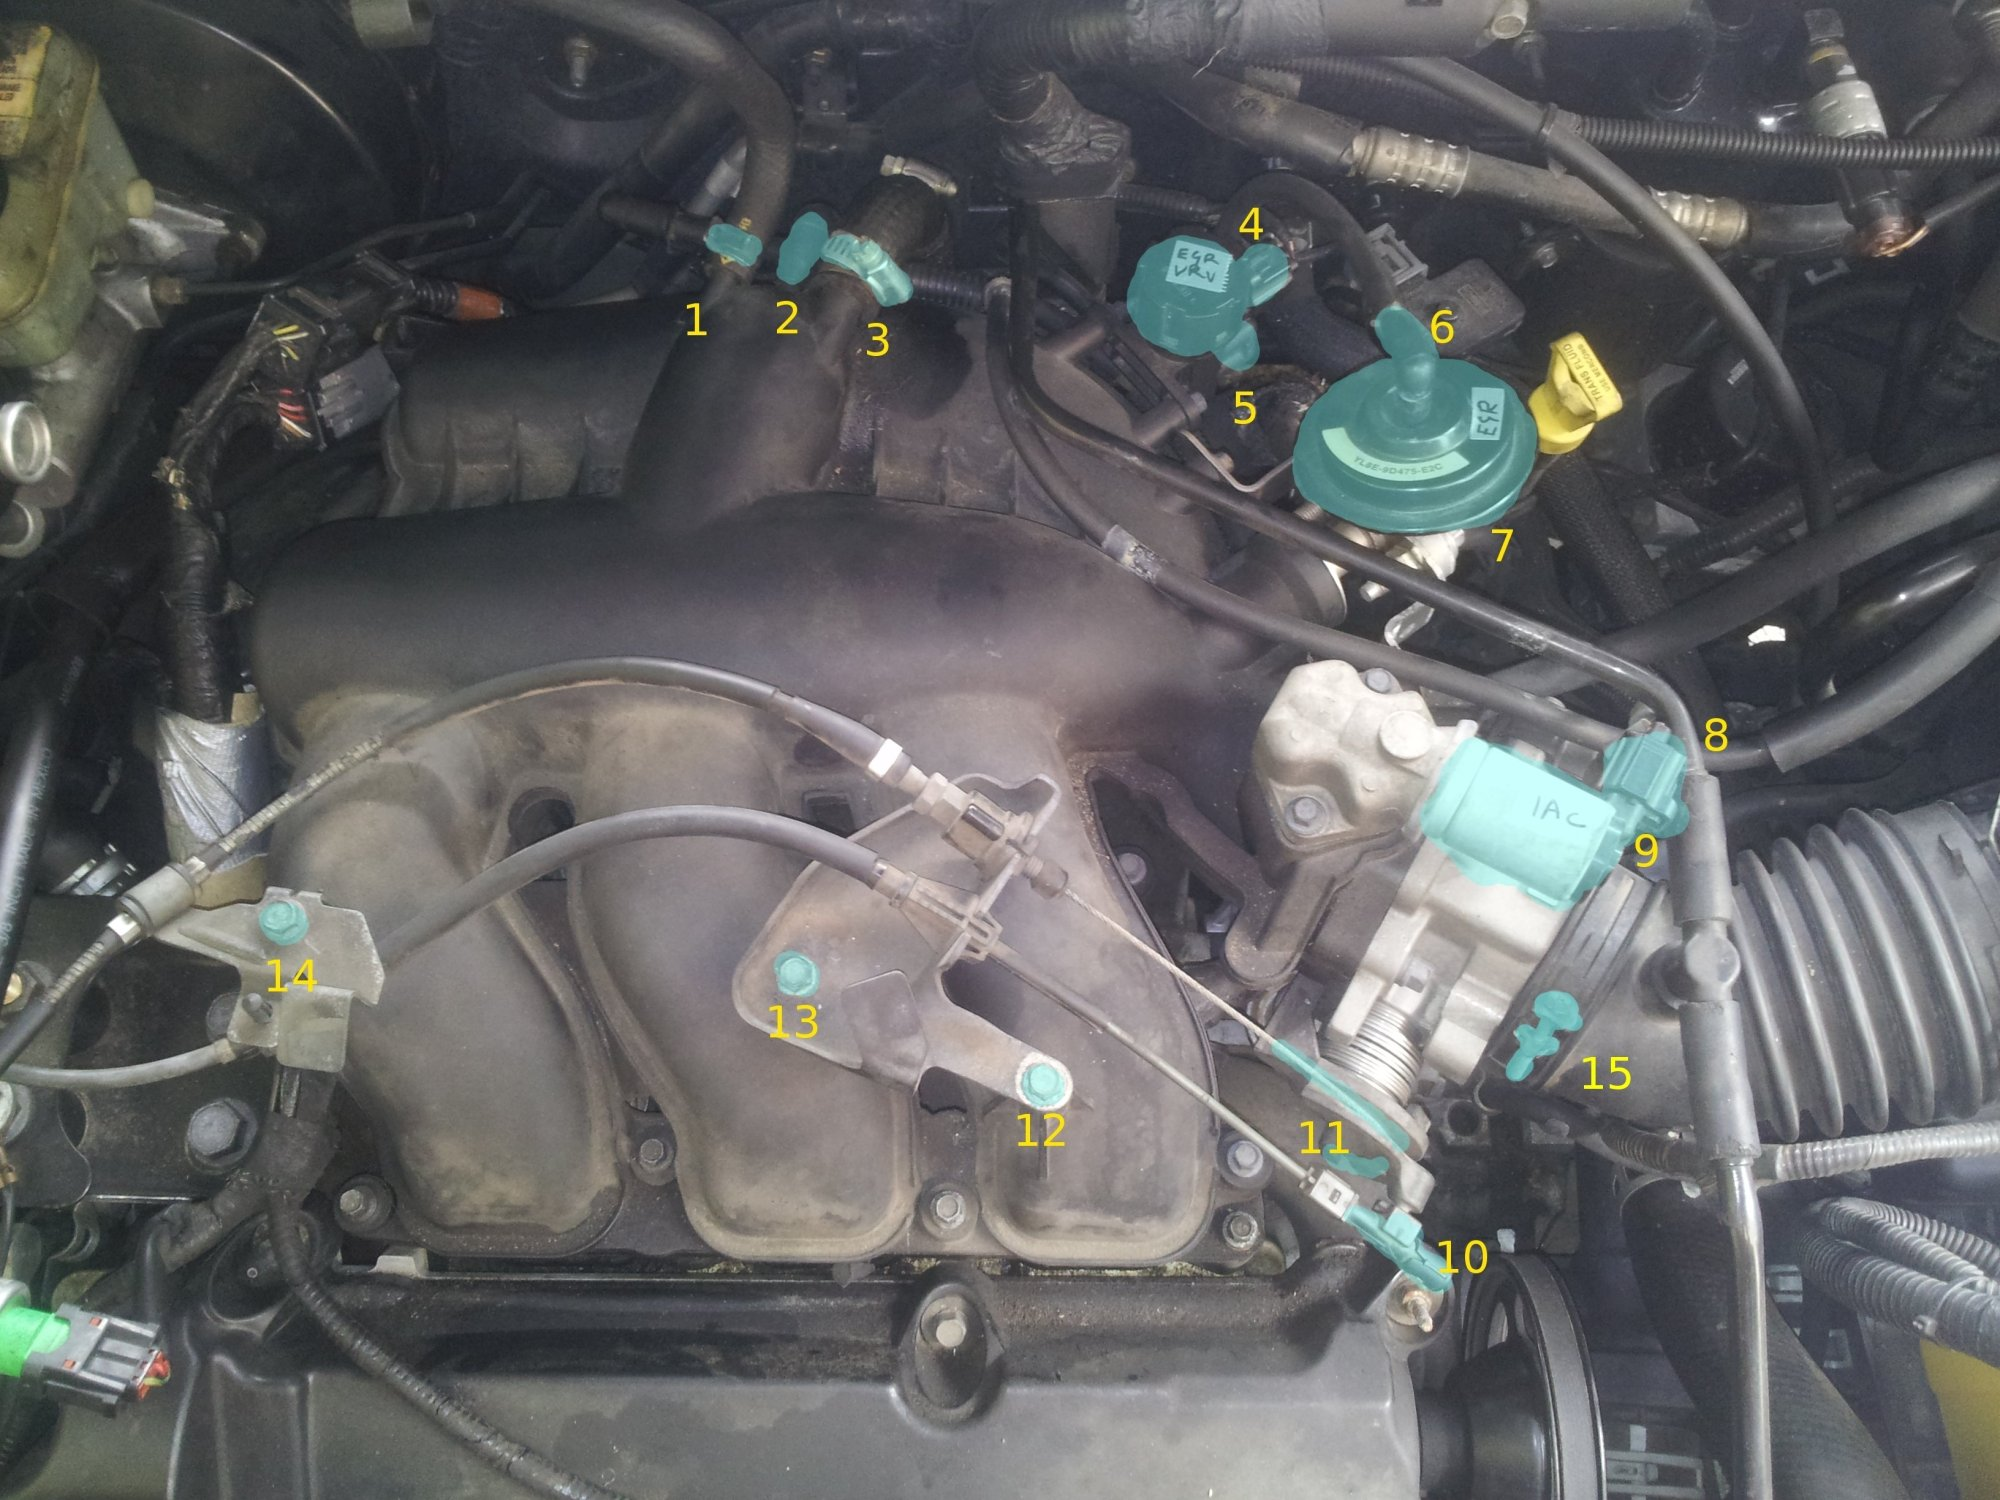 hight resolution of 2004 mazda tribute 3 0 engine diagram wiring diagram expert2004 mazda tribute 3 0 engine intake